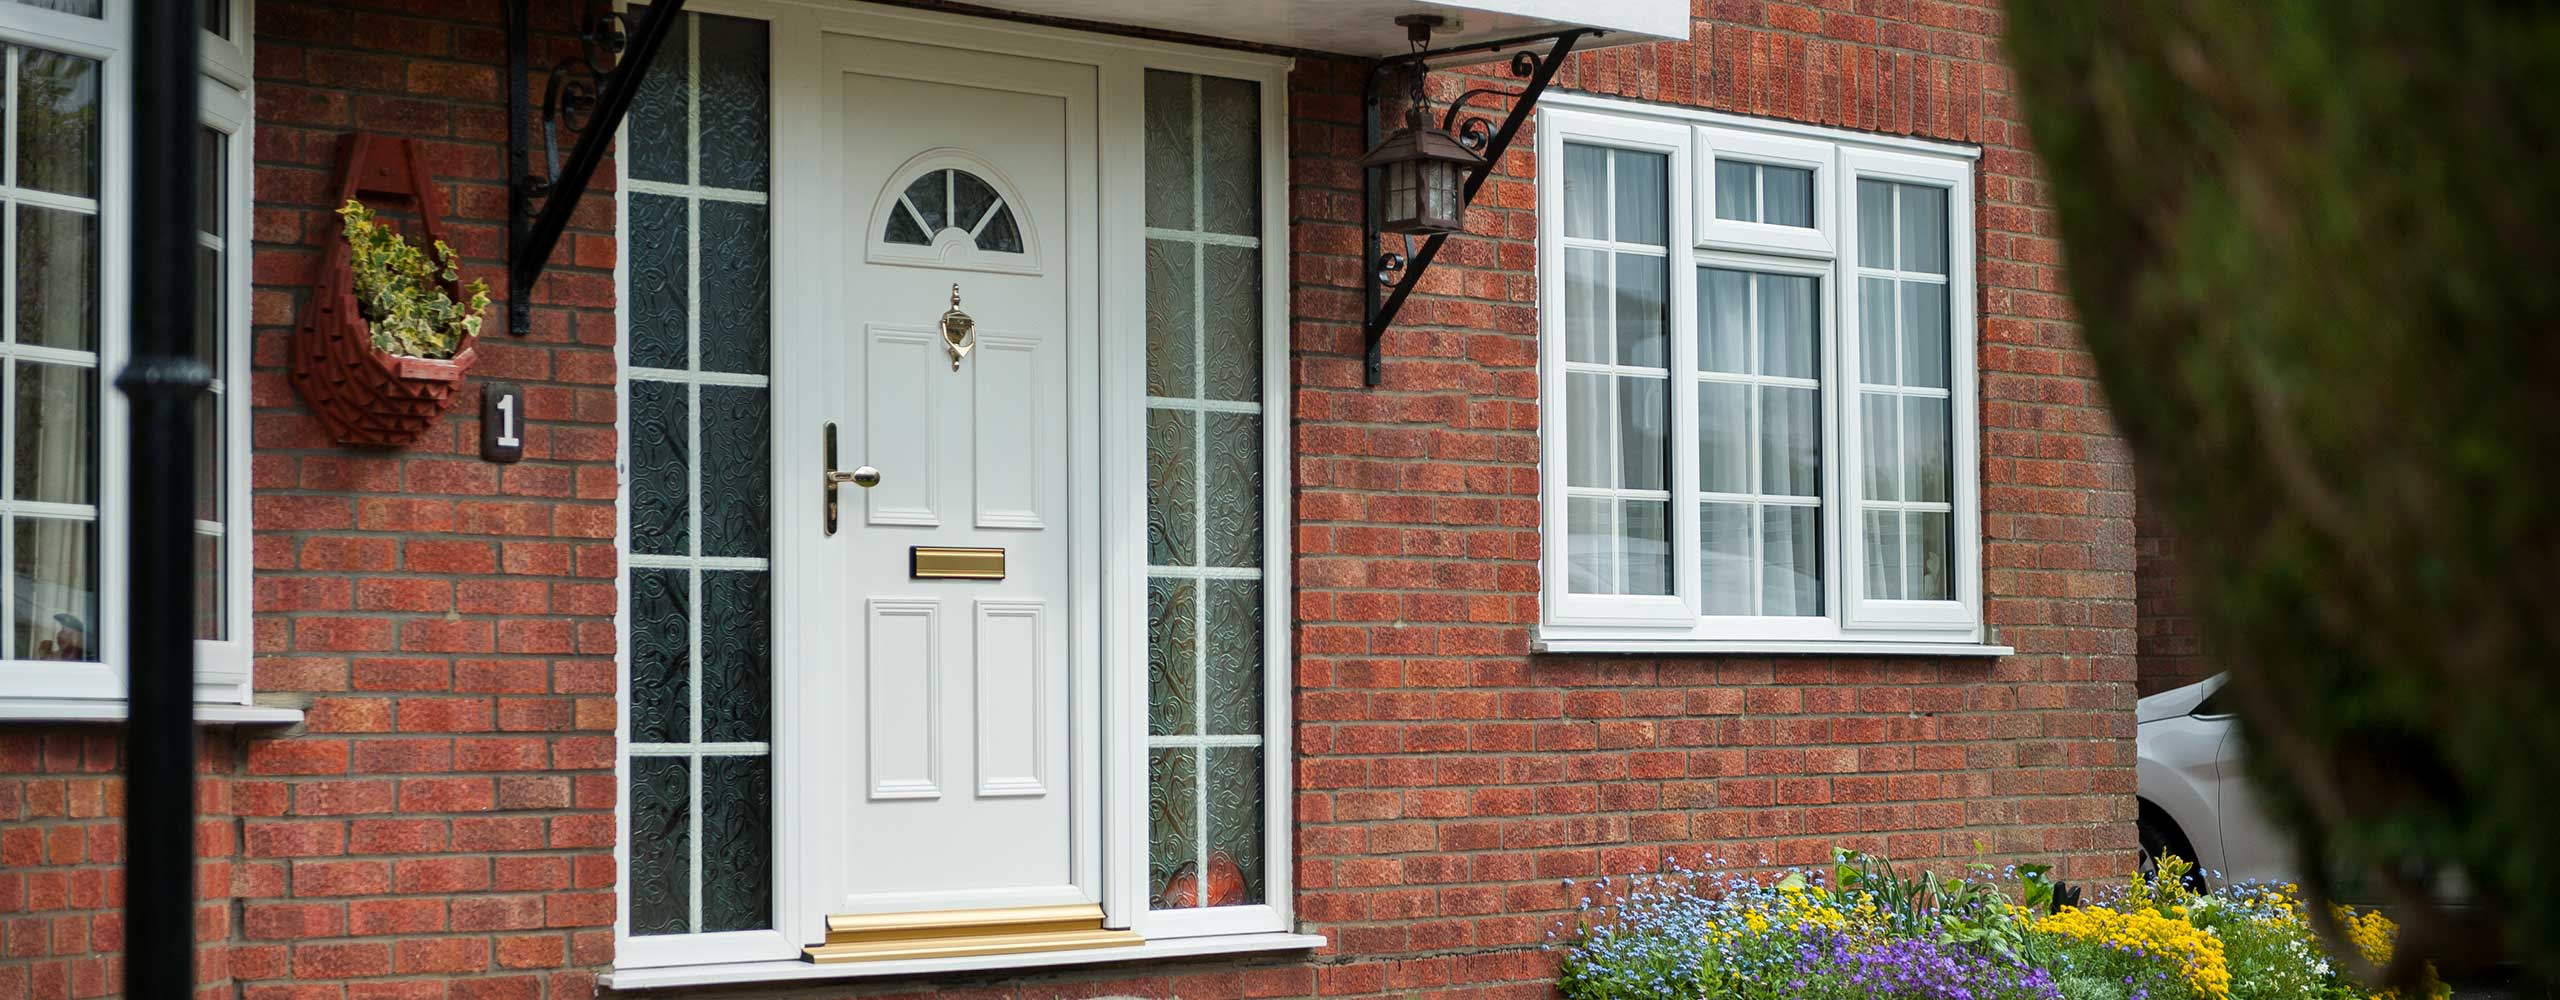 Double Glazing Doors morley